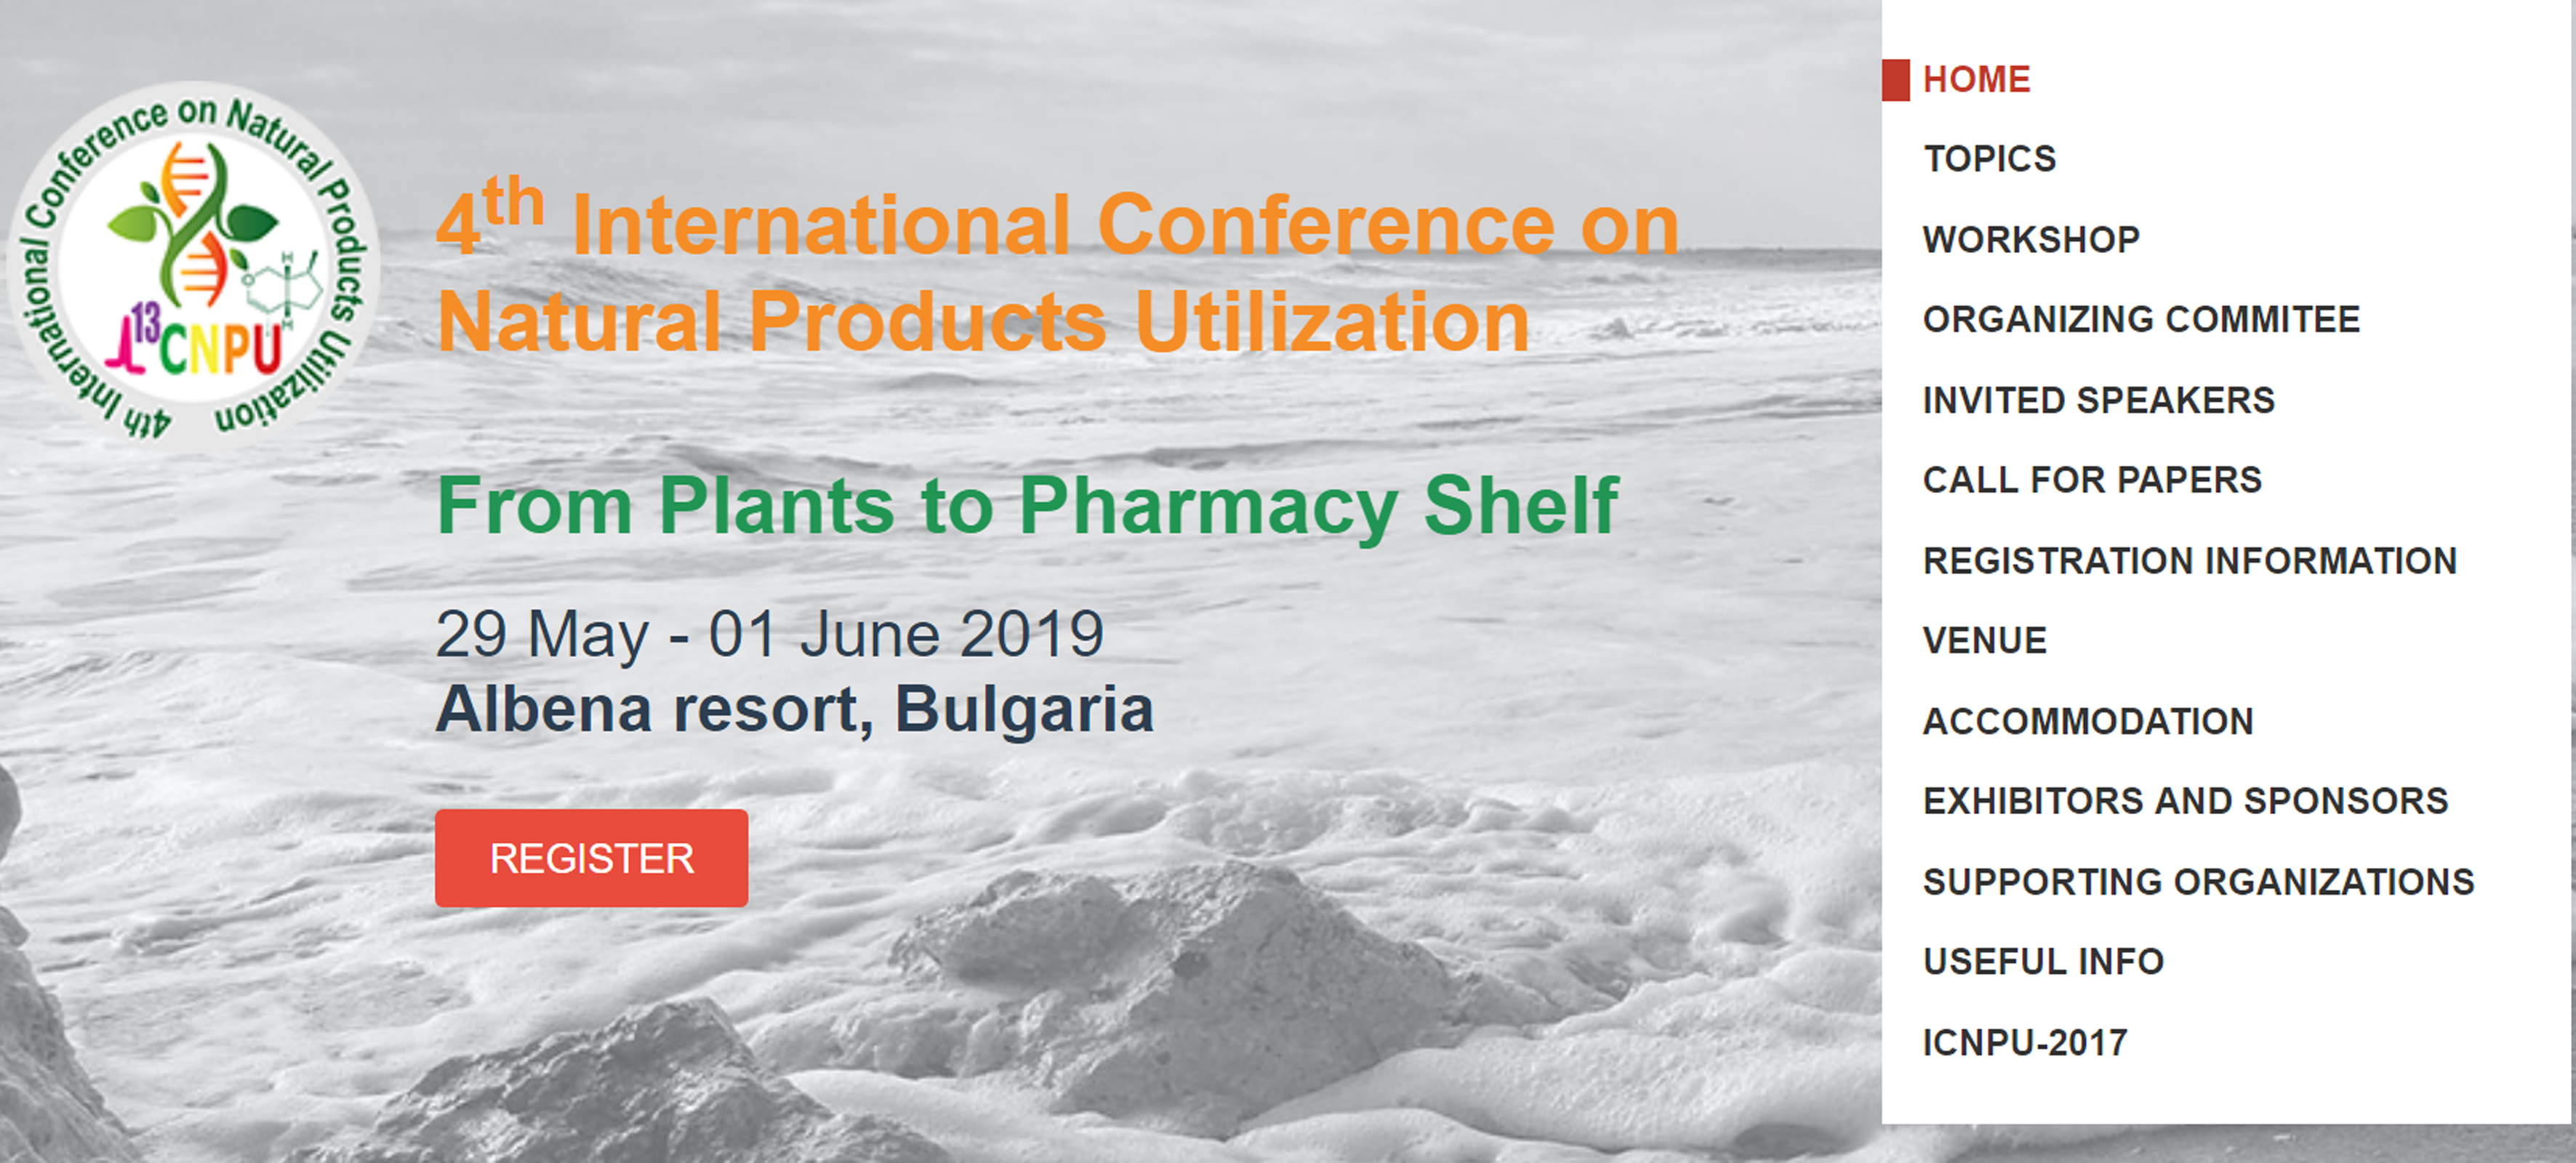 ICNPU-2019 4th International Conference on Natural Products Utilization From Plants to Pharmacy Shelf, supported by INPST